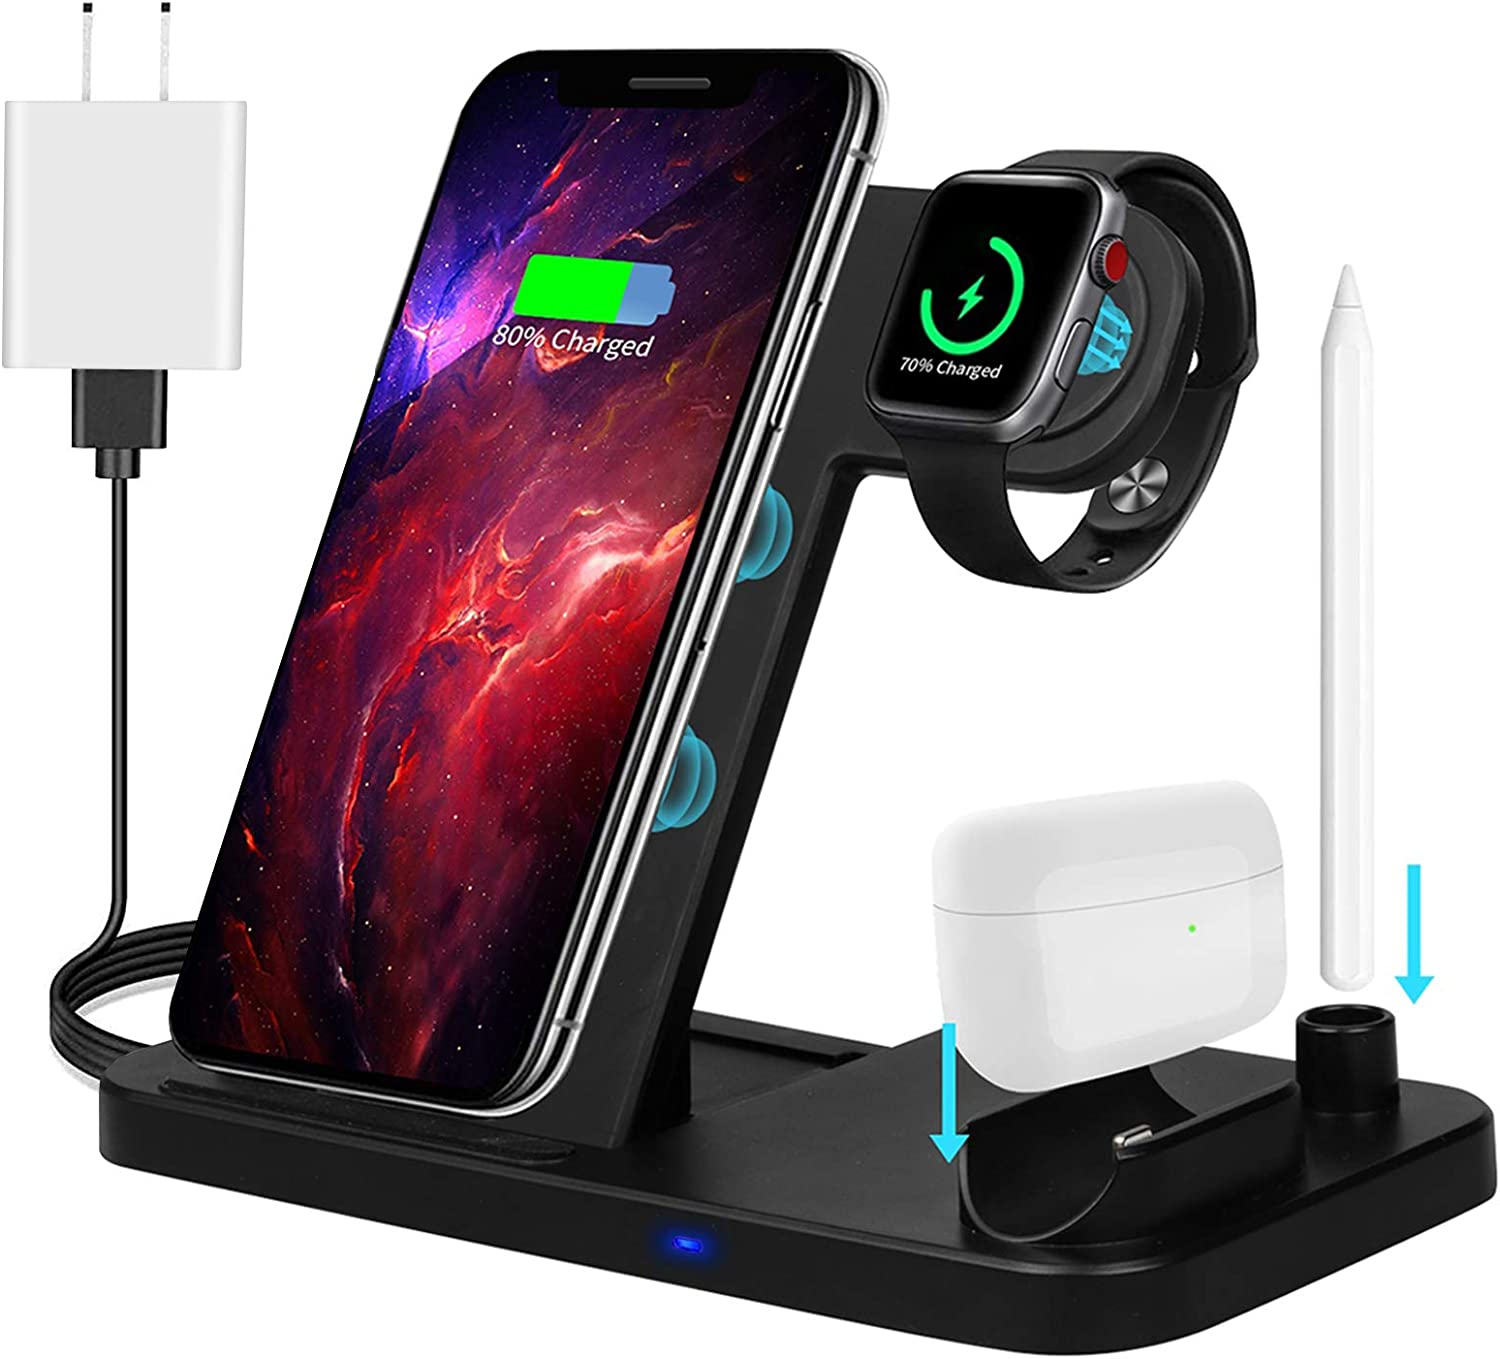 ZHOUBIN Wireless Charger Station, 4 in 1 Qi-Certified Fast Charging Dock Stand for Apple Watch-AirPods-Pencil, iPhone 11/11pro/X/XS/XR/Xs Max/8/8 Plus,Samsung Galaxy S20/S10